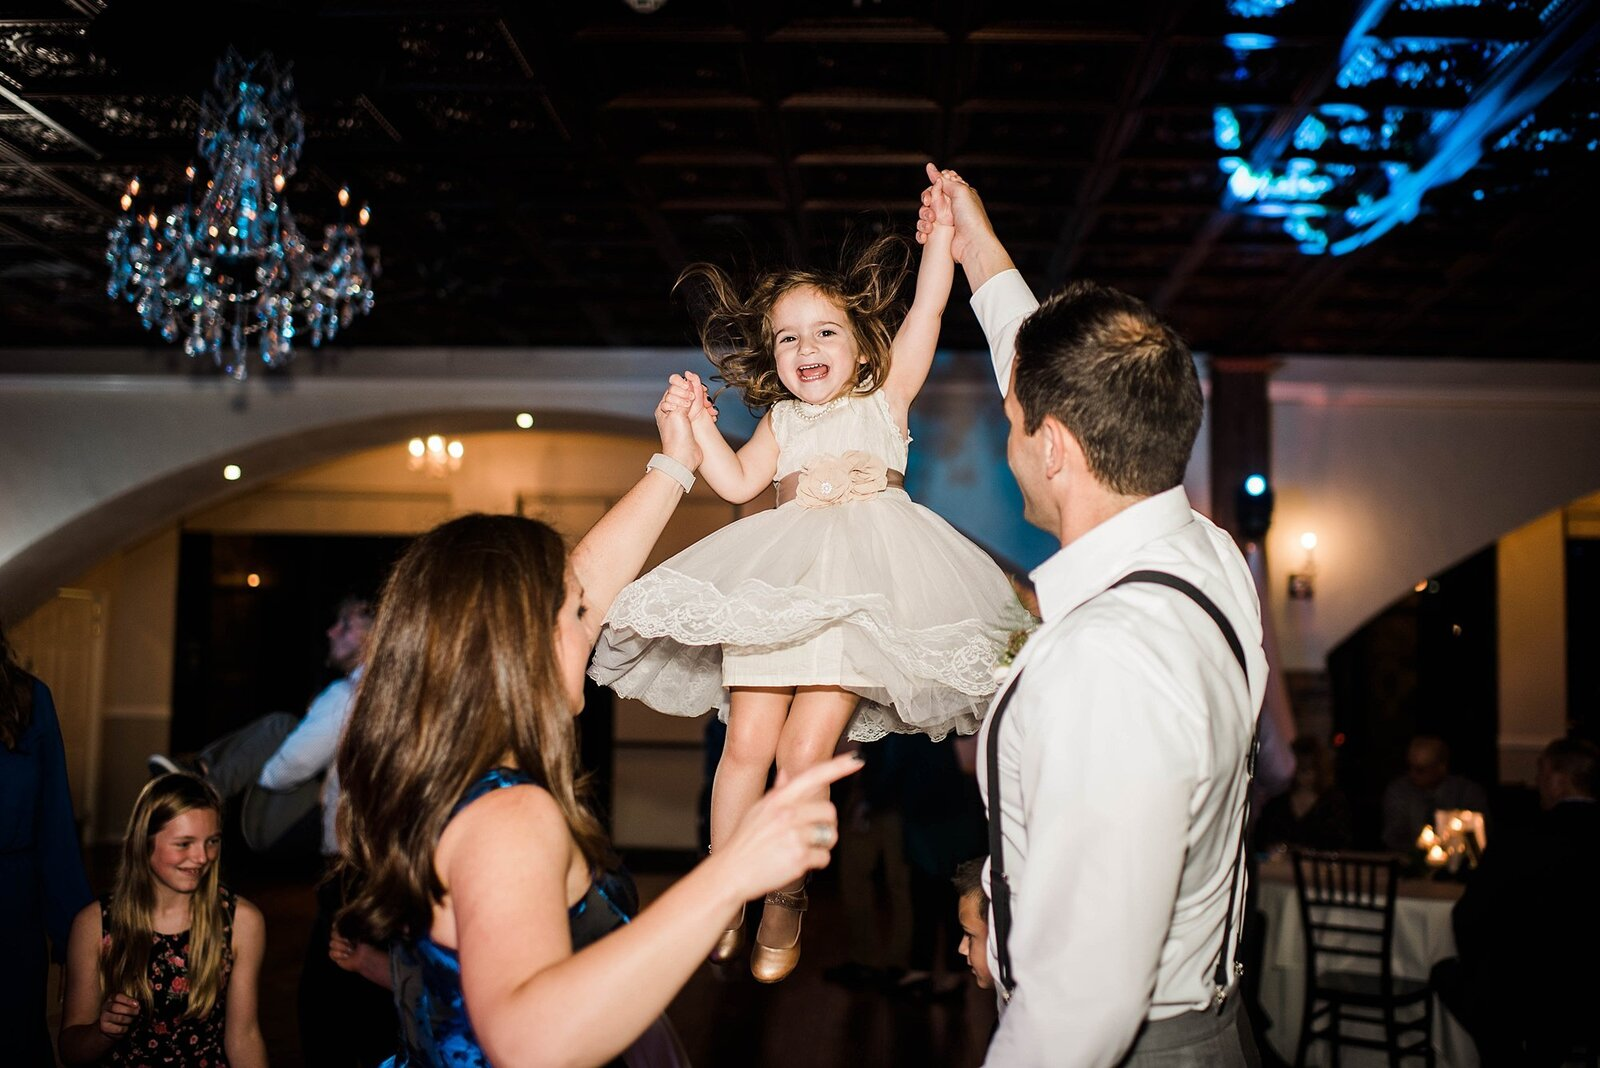 Wedding guests hold their daughter in the air at the pavilion event space